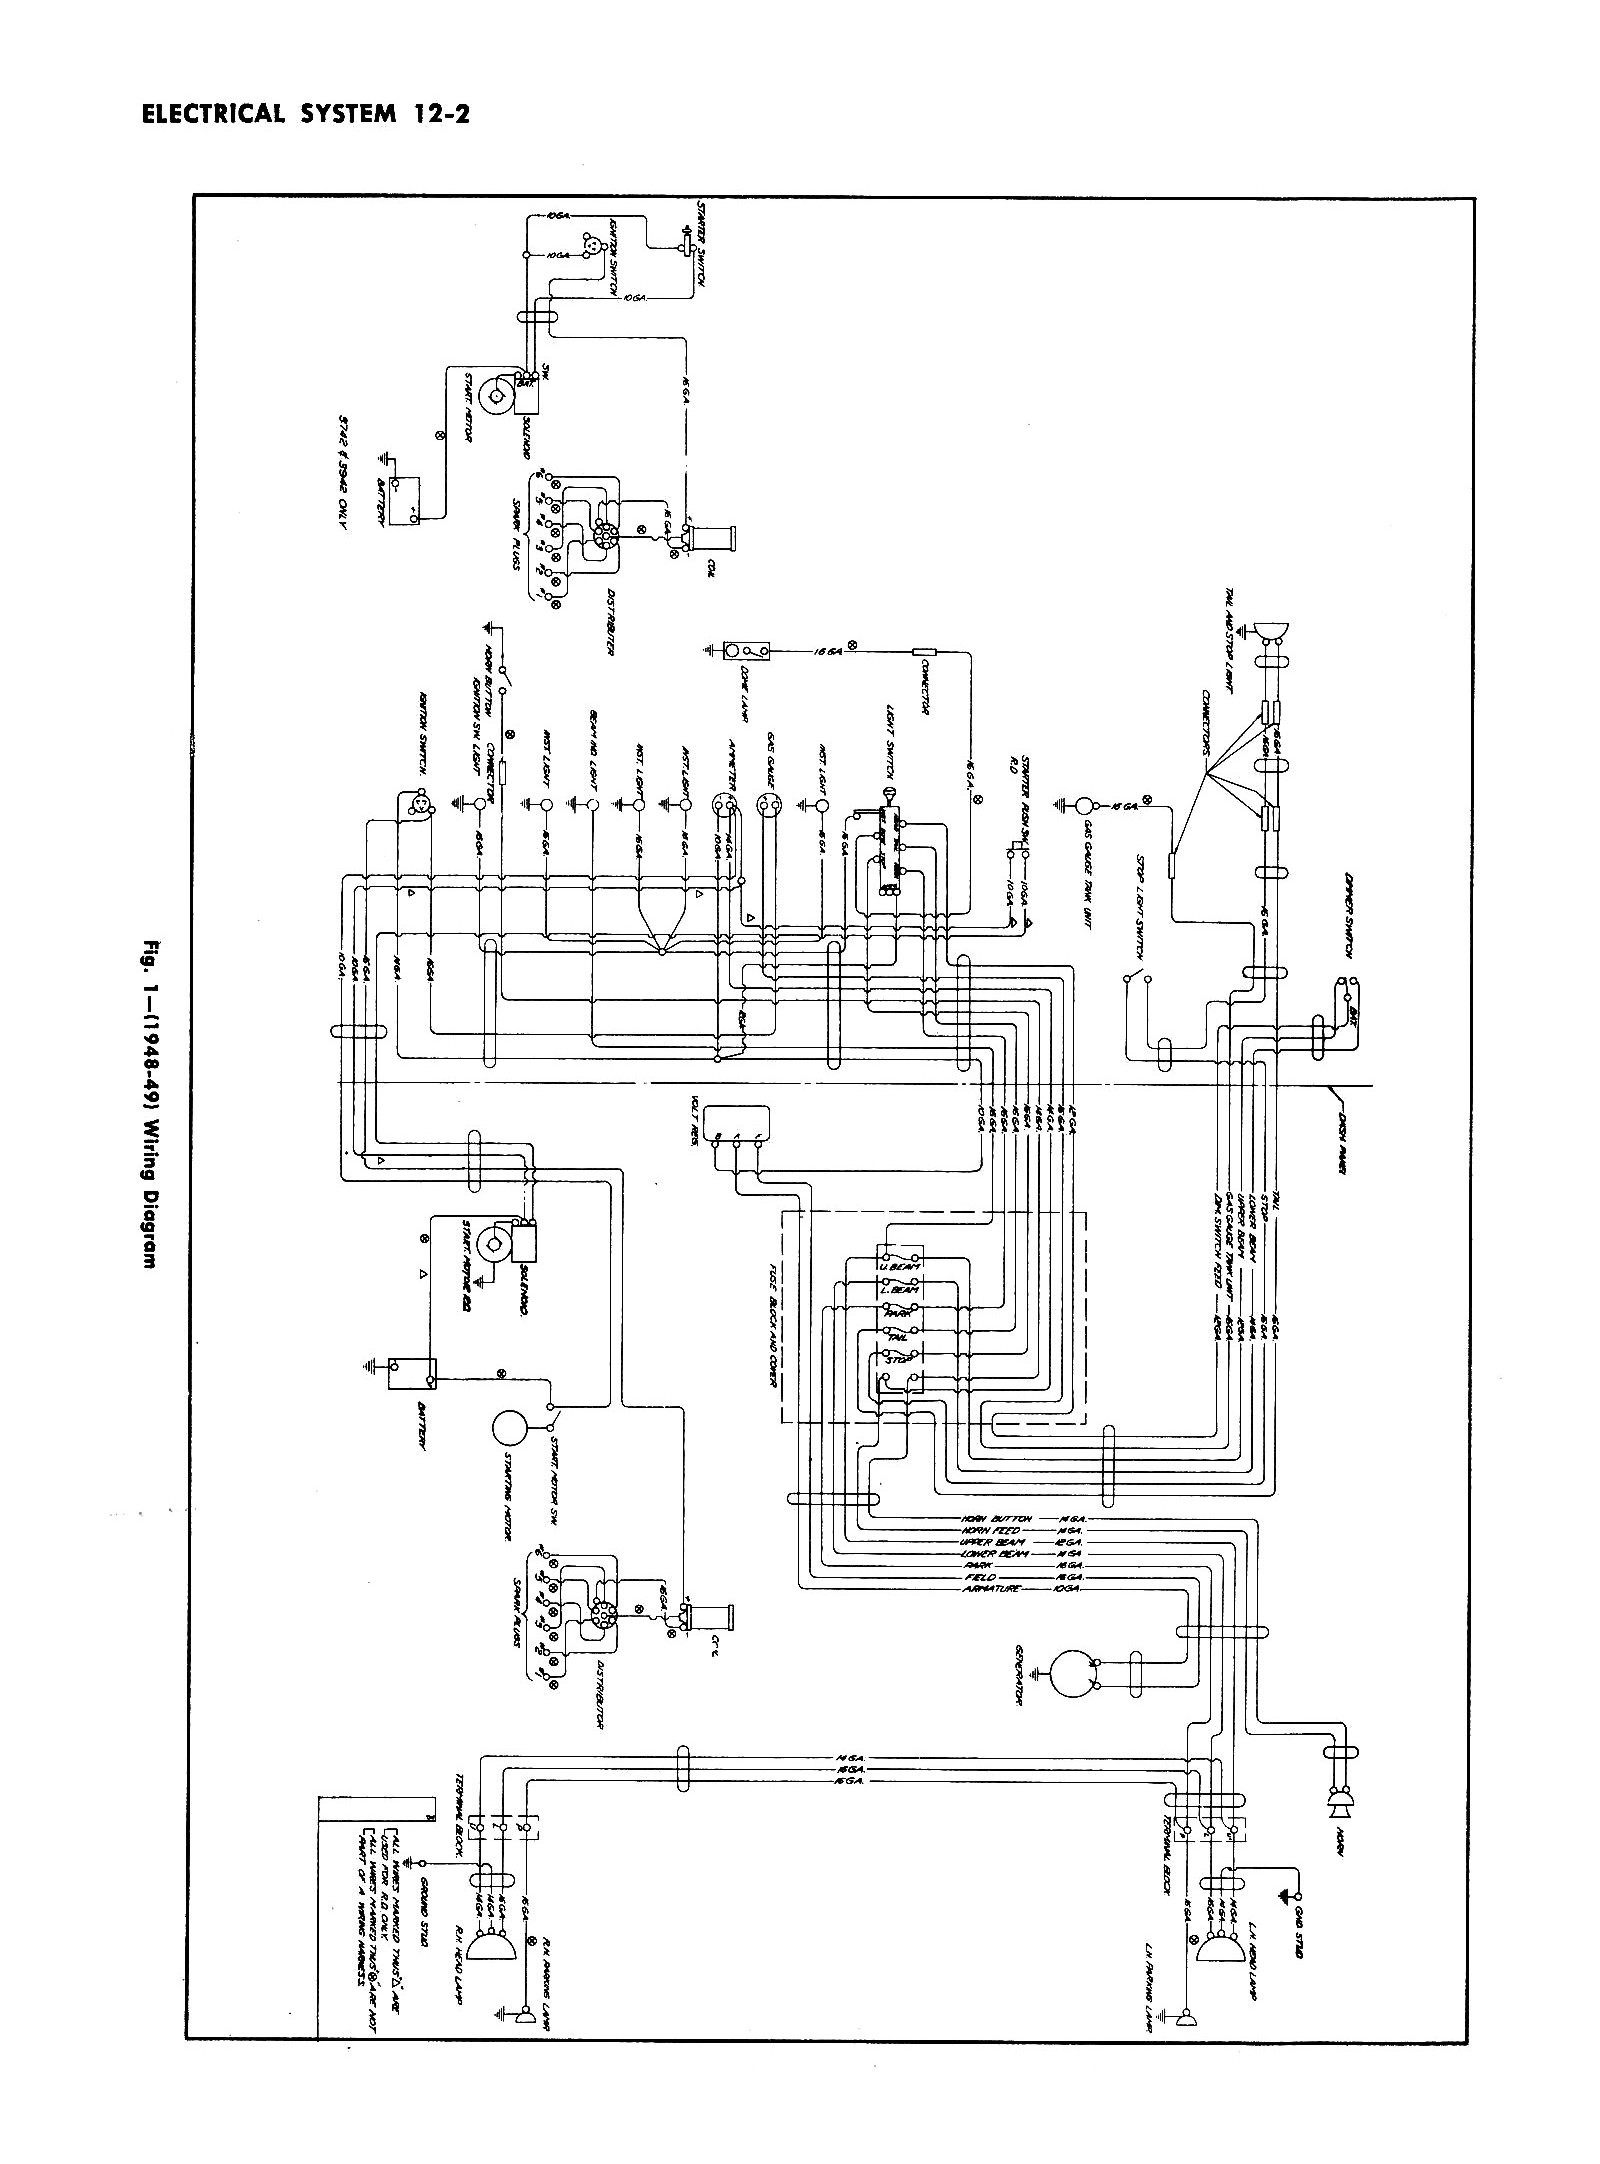 48car gmc ke switch wiring diagram wiring diagram simonand gm truck wiring harness at honlapkeszites.co